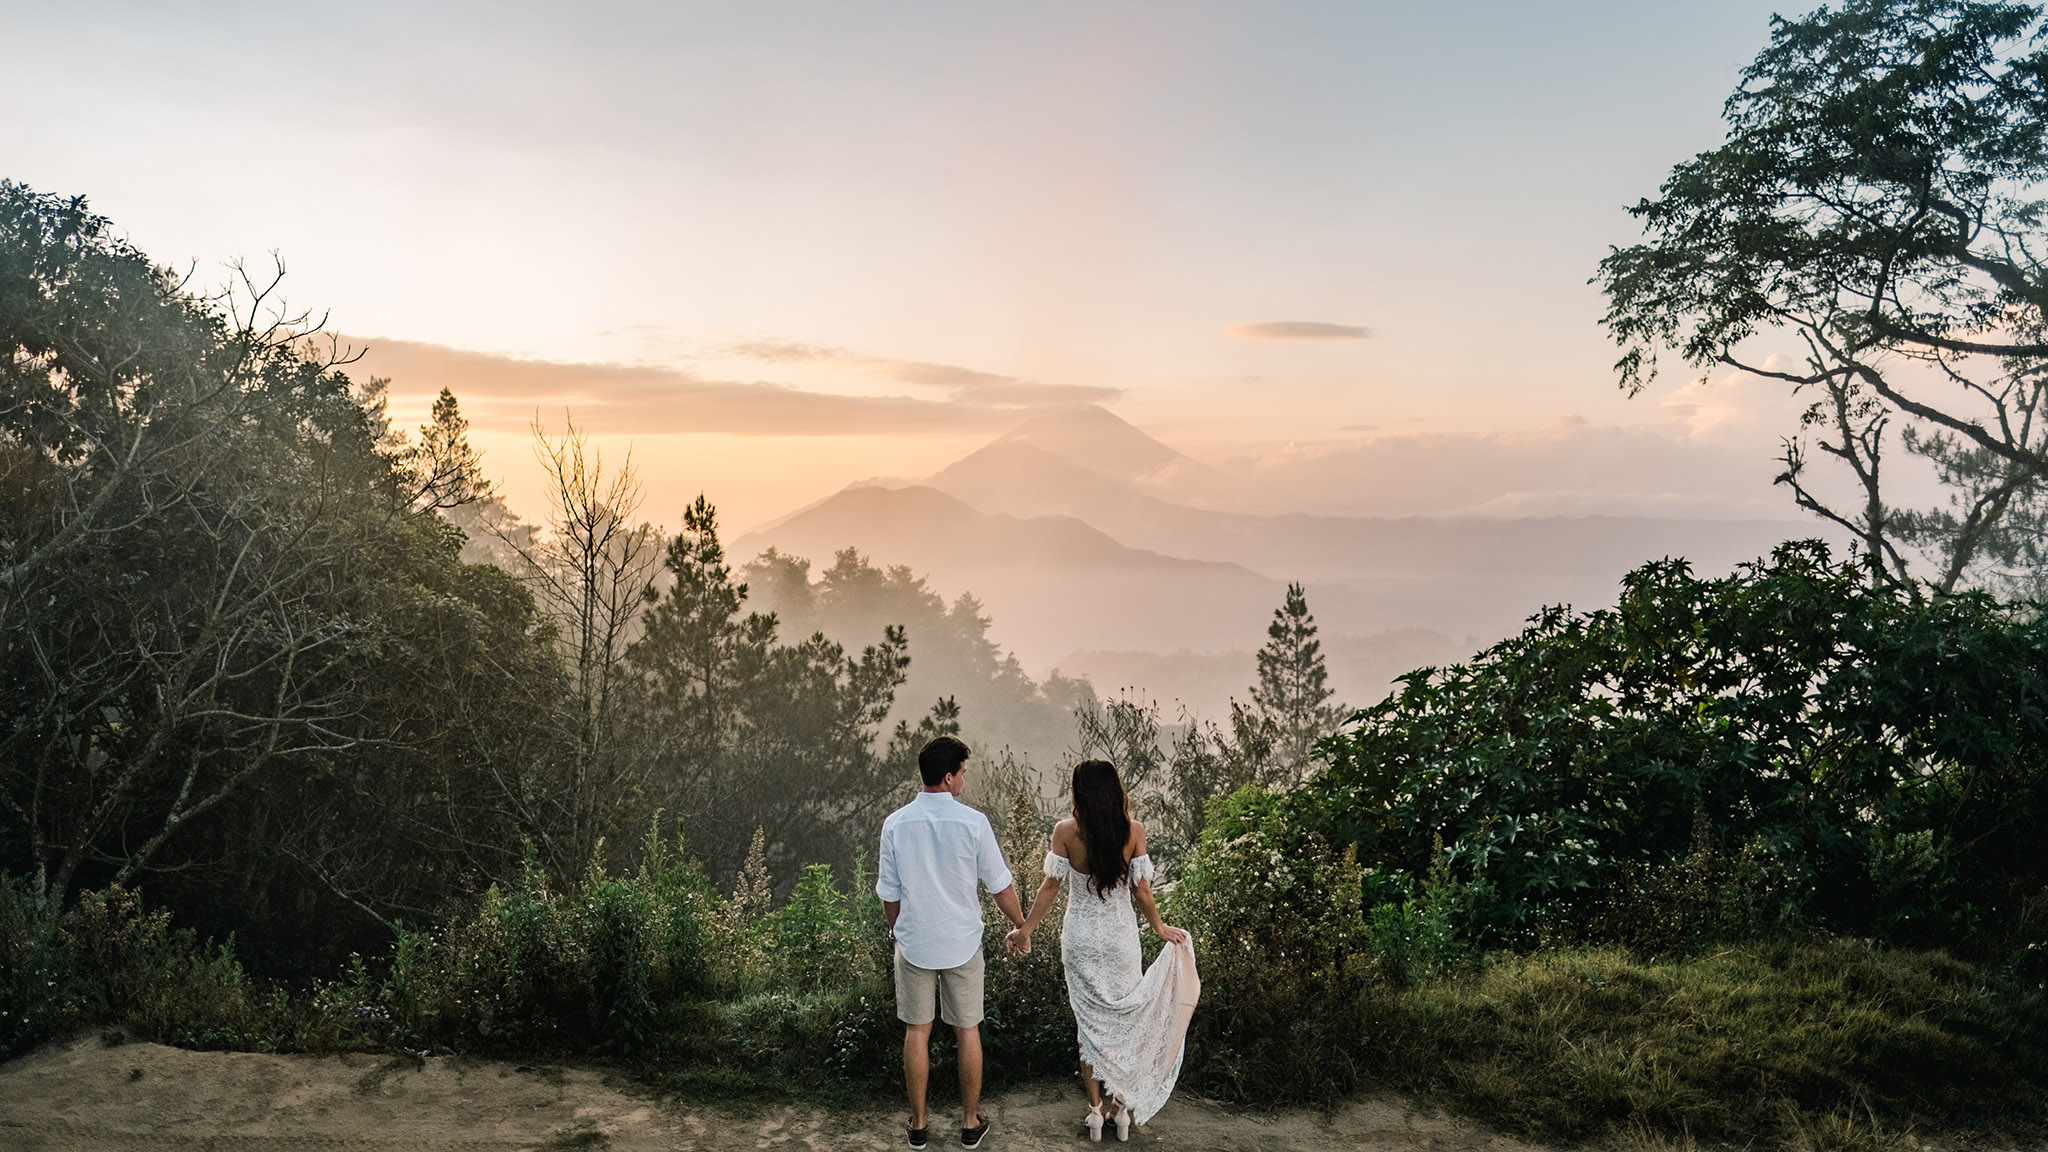 The Most Instagrammable Bali Photo Spots